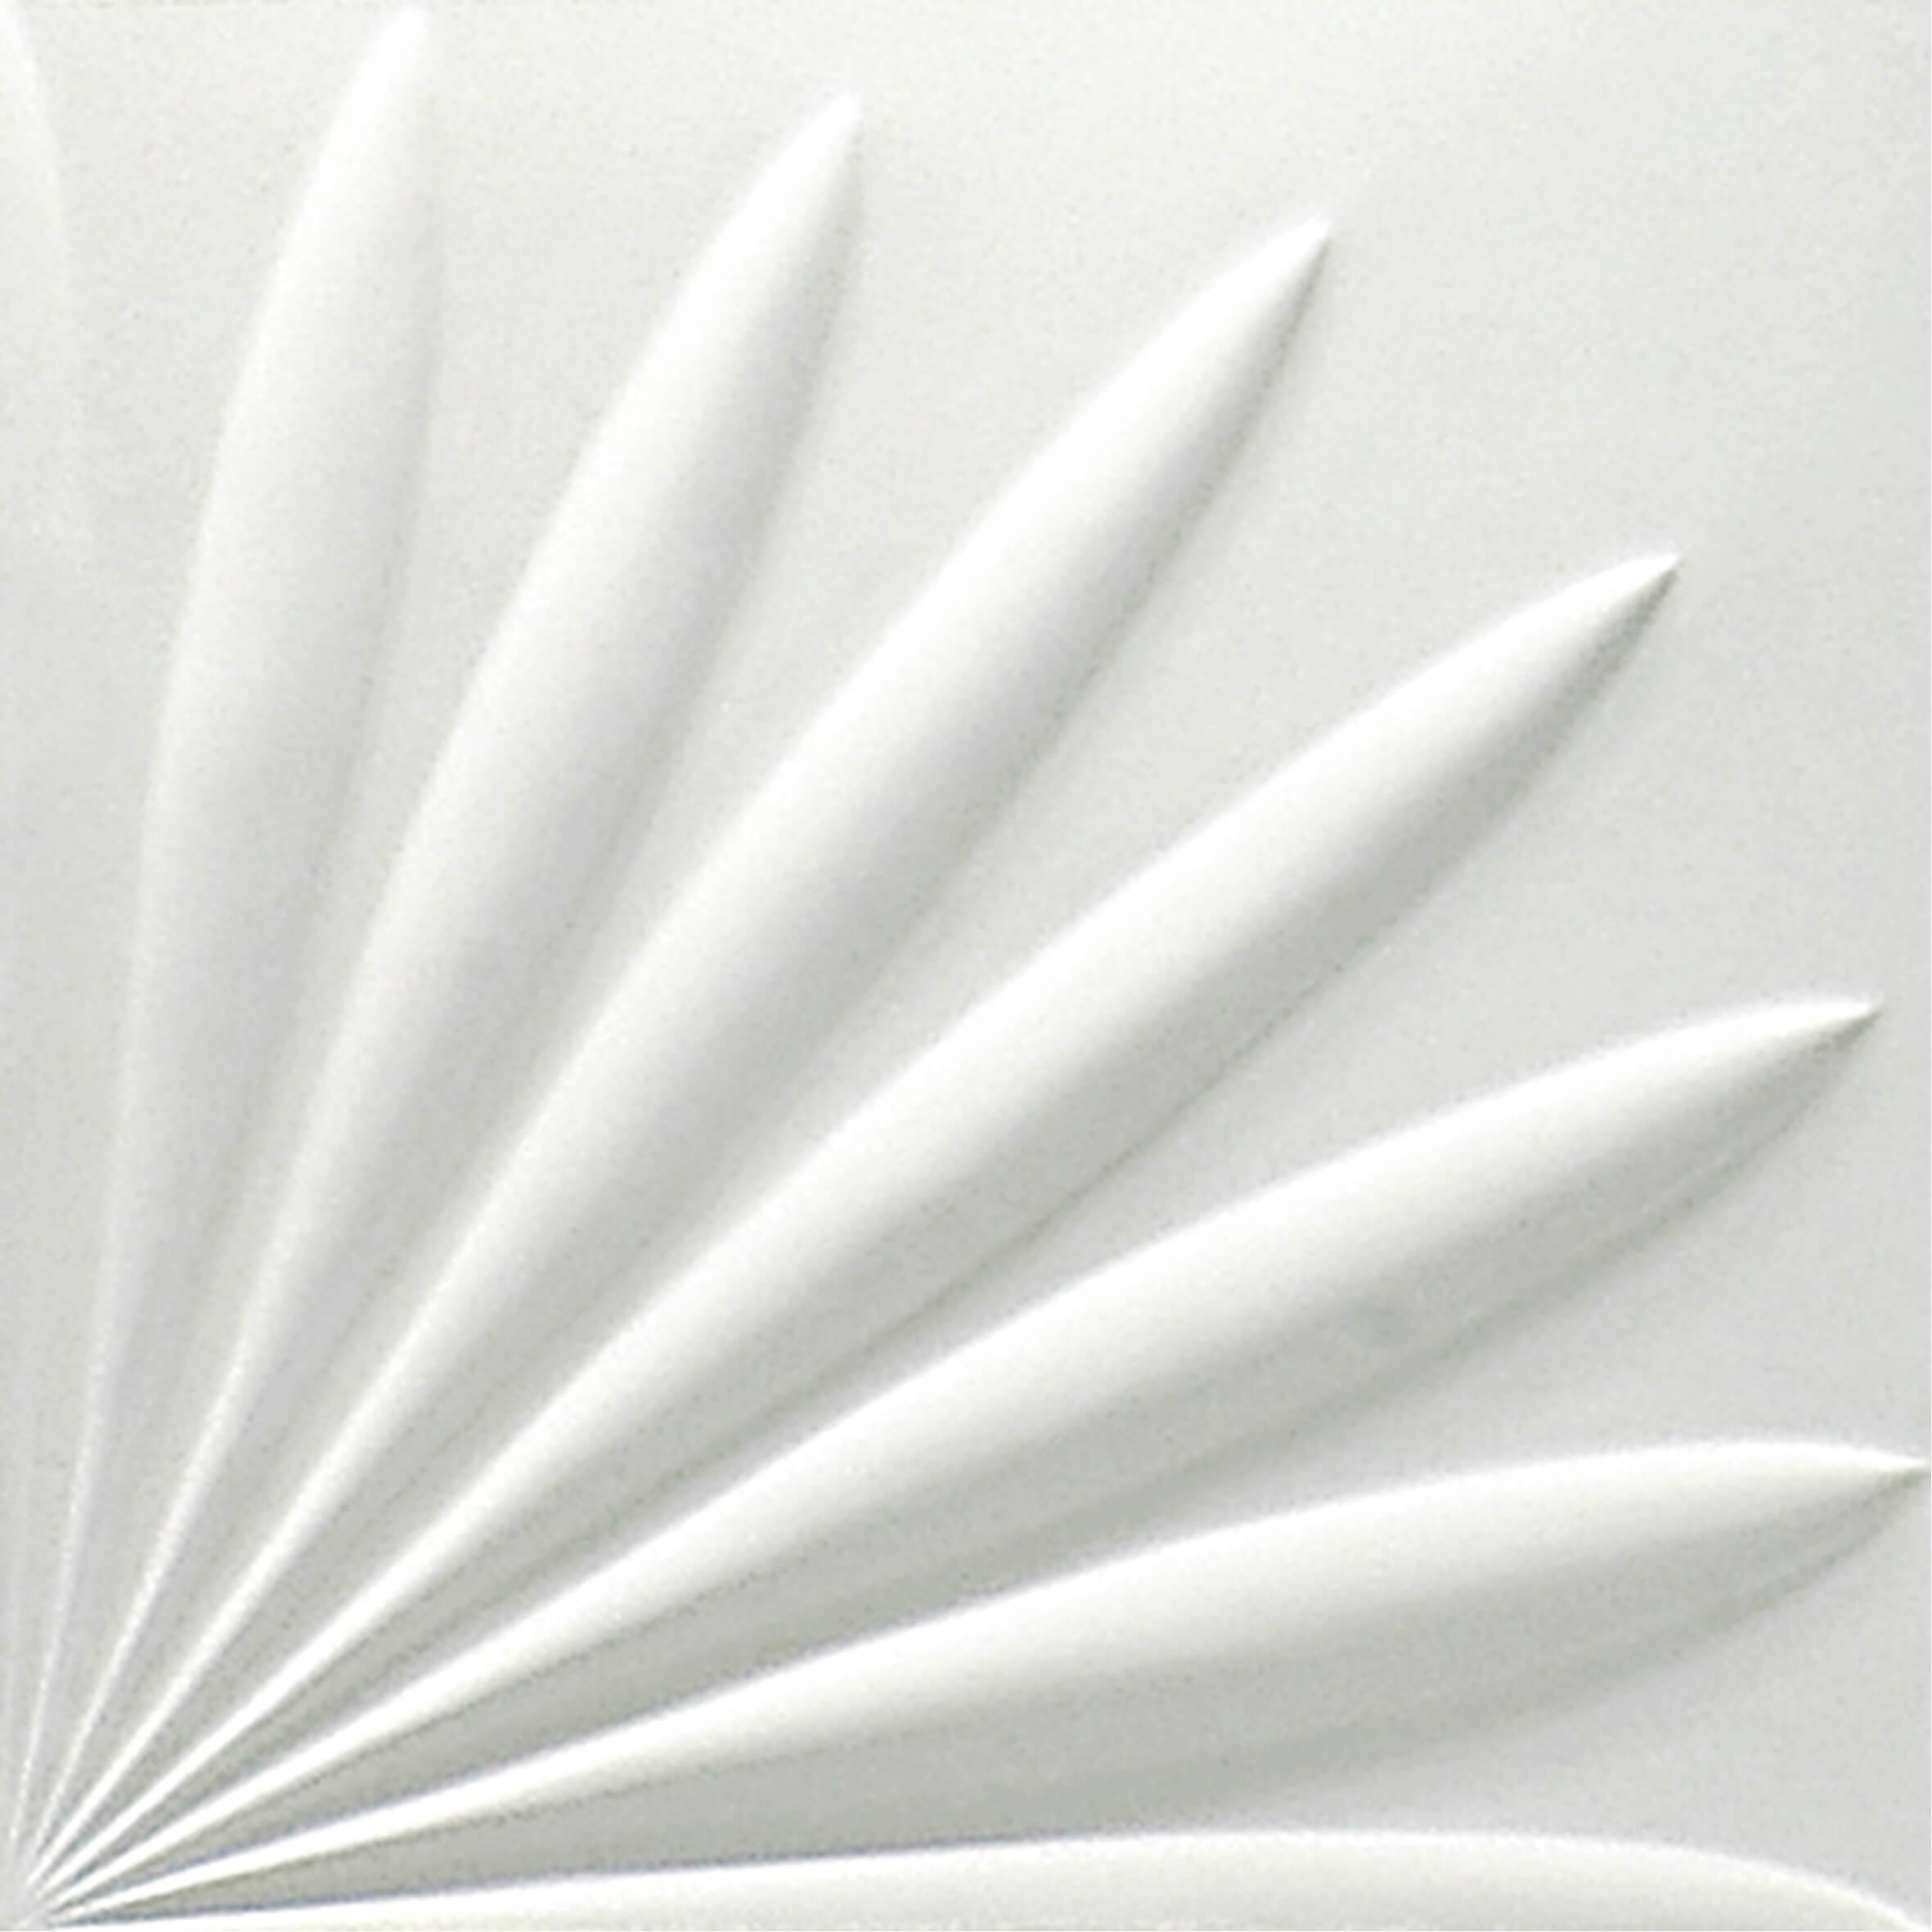 3D Wall Art – Rd Decor In Best And Newest Blossom White 3D Wall Art (View 2 of 20)